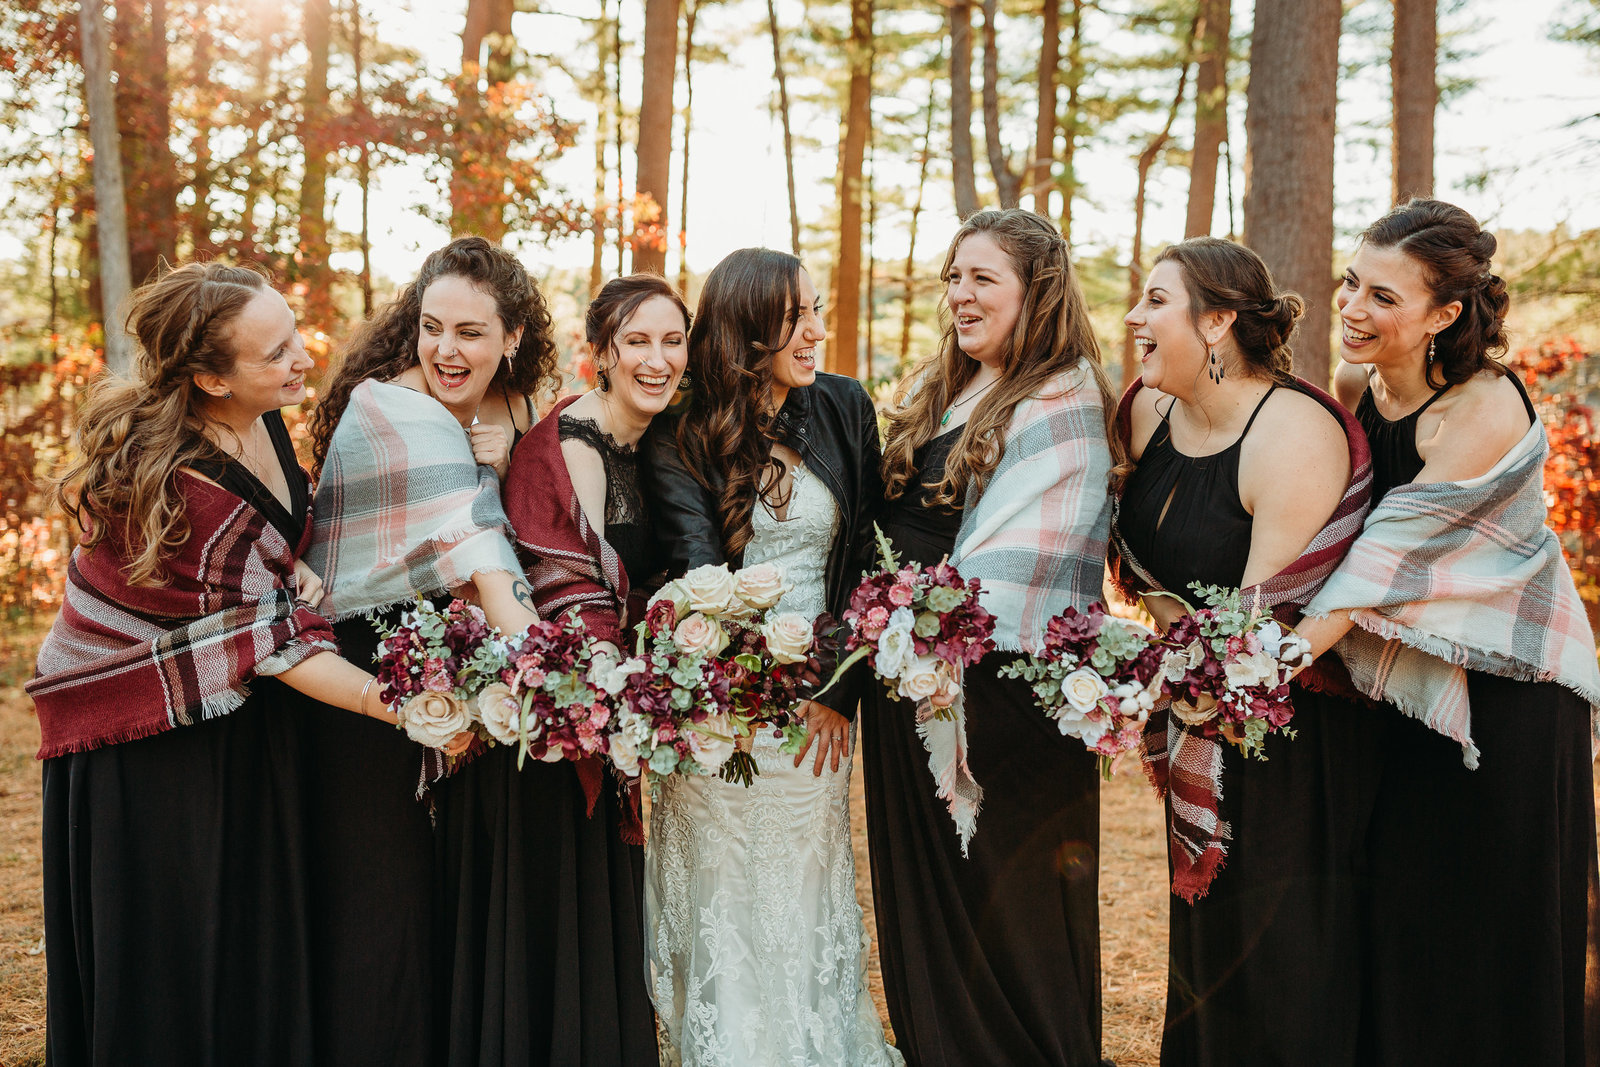 bride and bridesmaids laugh while wrapped in shawls at outdoor massachusetts autumn wedding